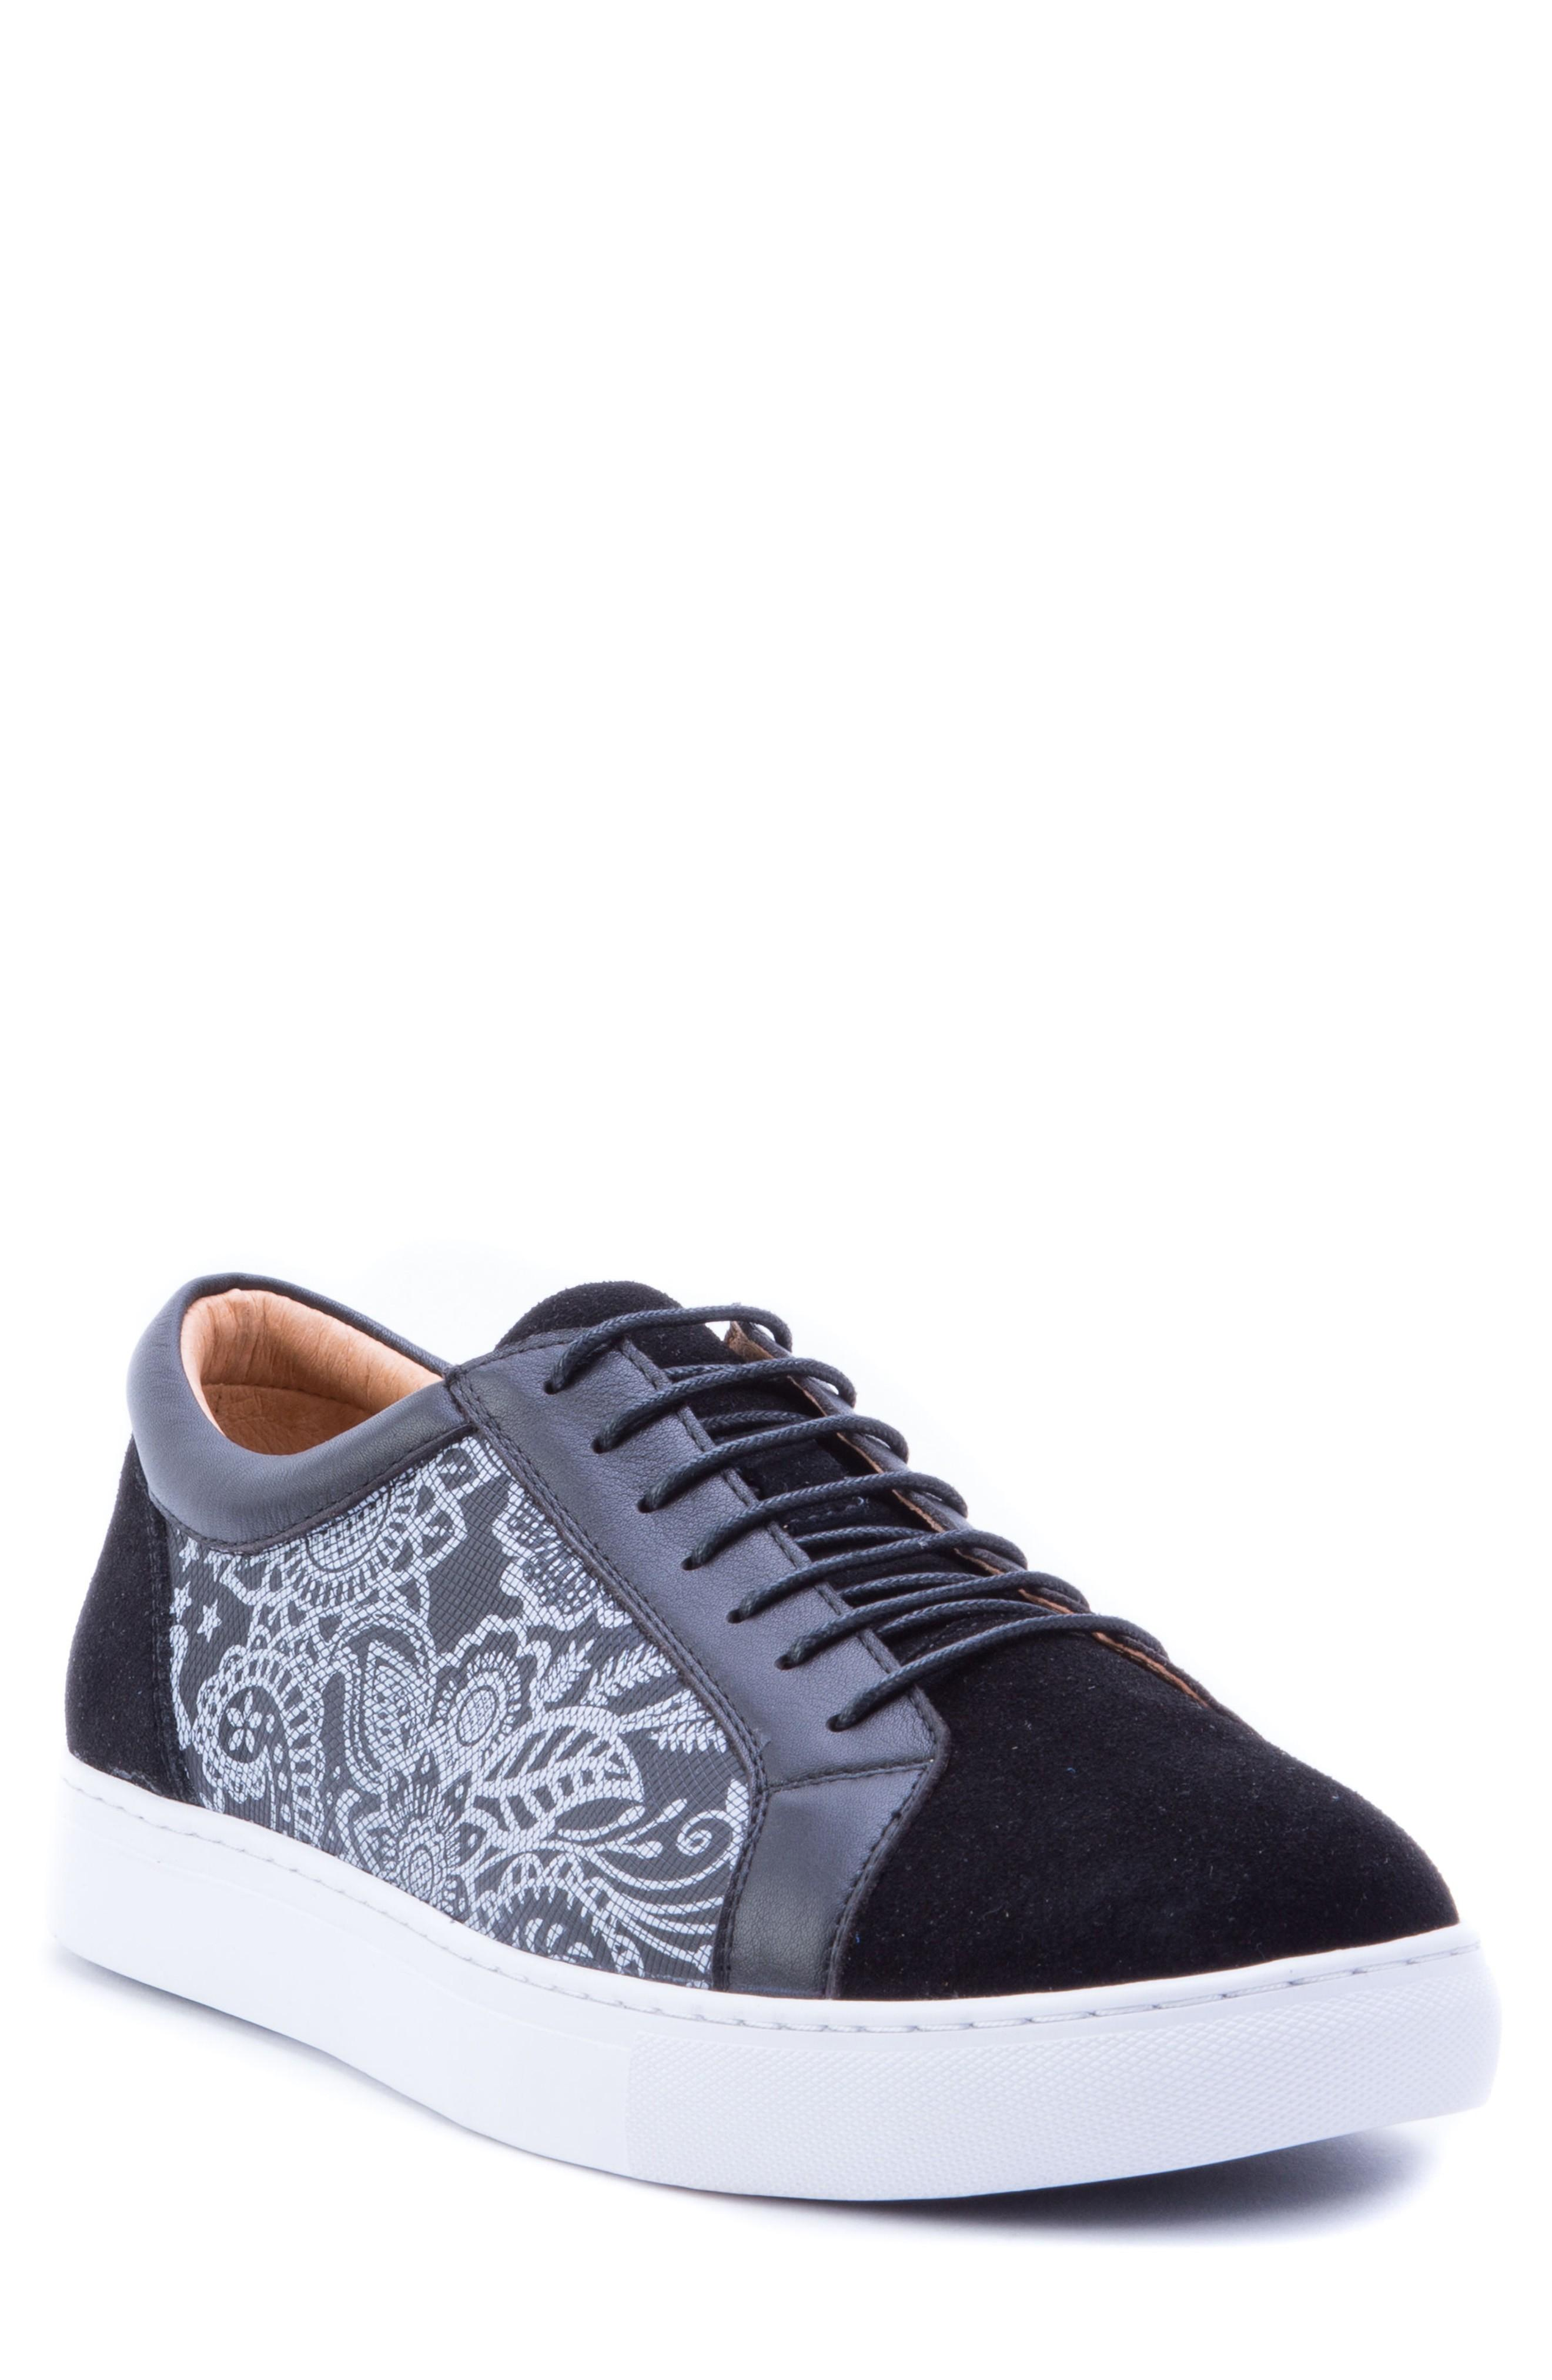 Robert Graham Rubio Floral Sneaker In Black Suede